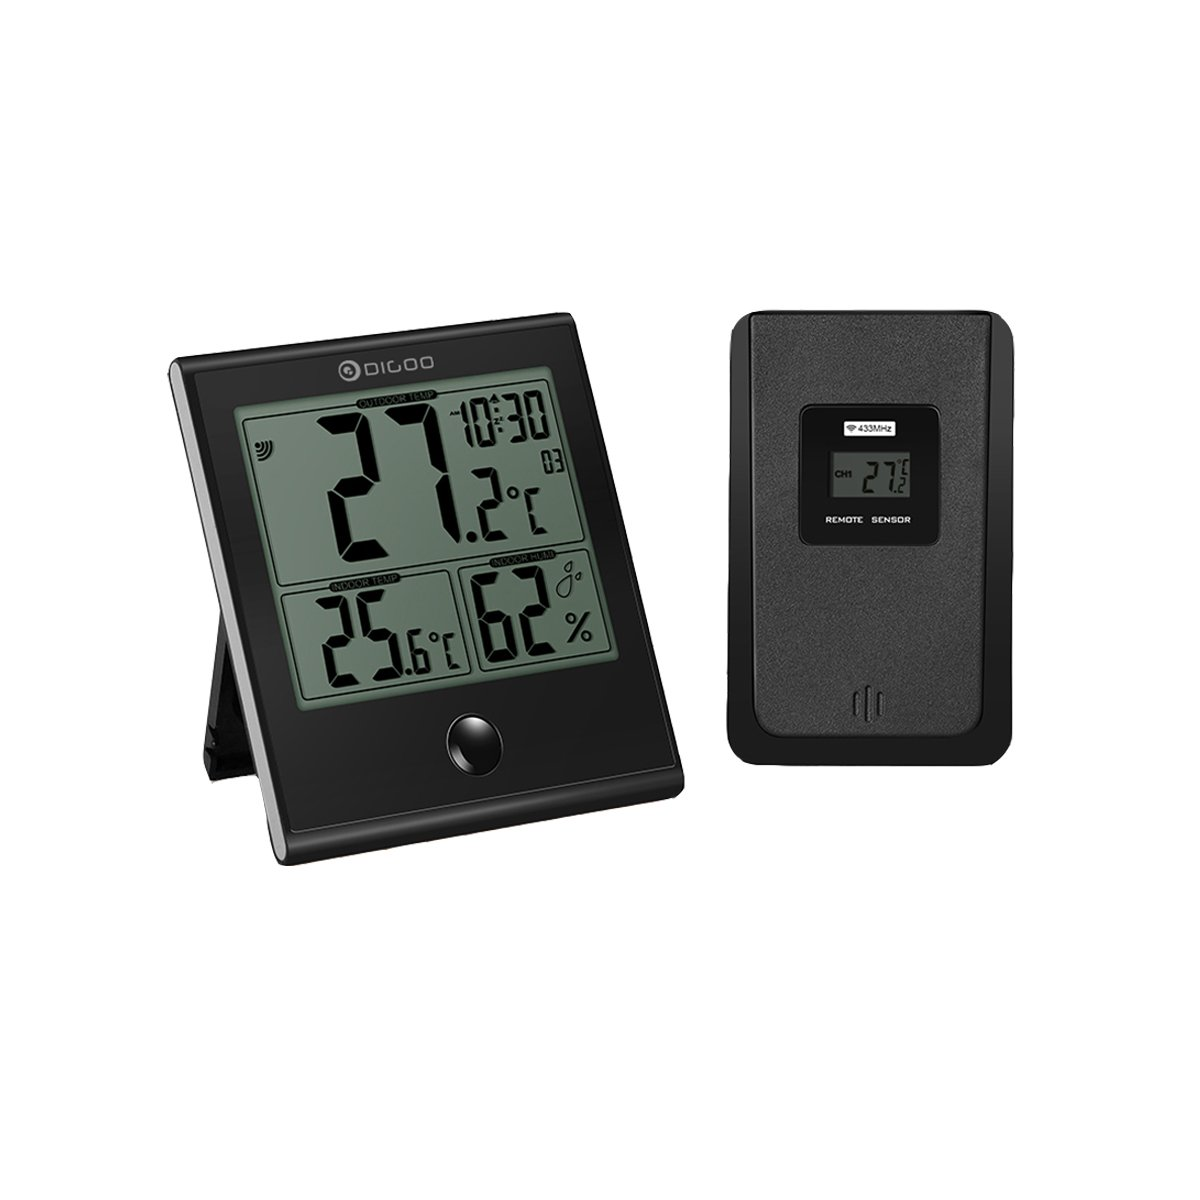 DIGOO Digital Indoor Outdoor Home Thermometer, High-precision Hygrometer Gauge Monitoring Humidity Temperature, Clock Alarm Function, Large LCD Display